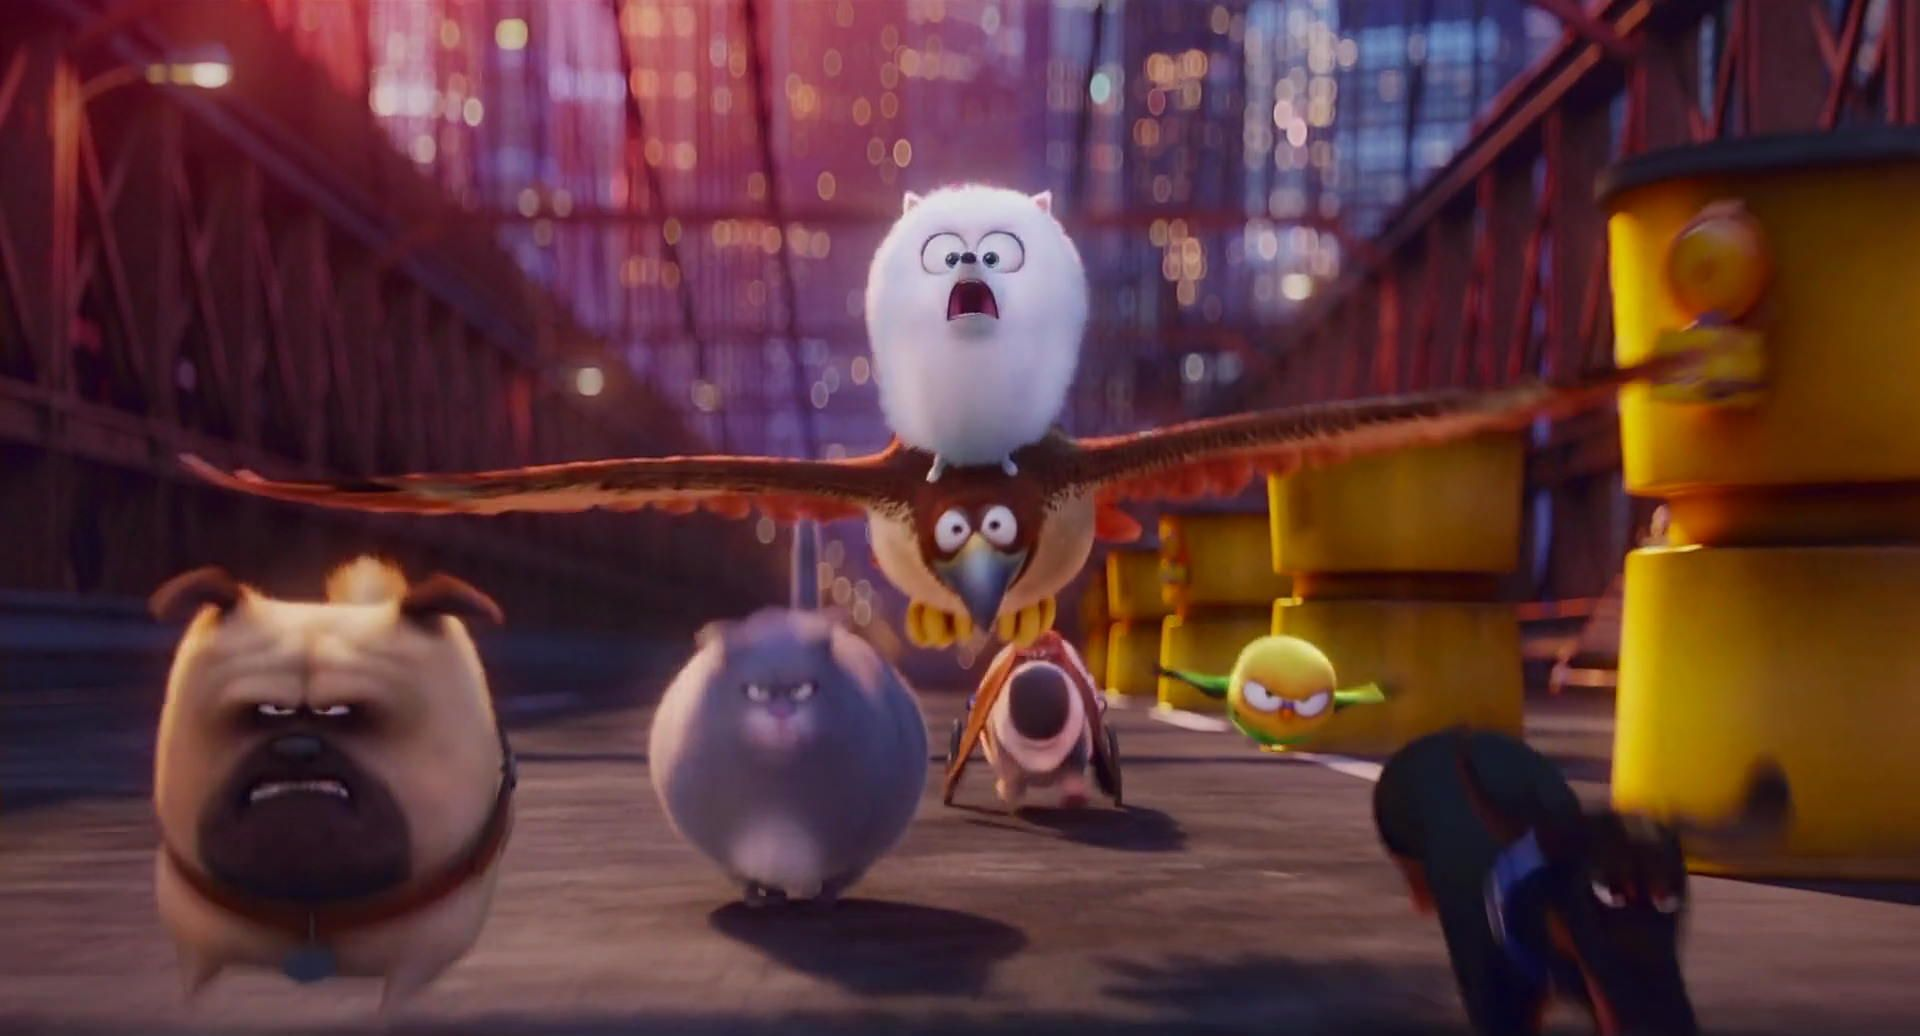 Screencap Gallery For The Secret Life Of Pets 2016 1080p Bluray Illumination Entertainment Taking Place In A Manhatt Secret Life Of Pets Secret Life Pets